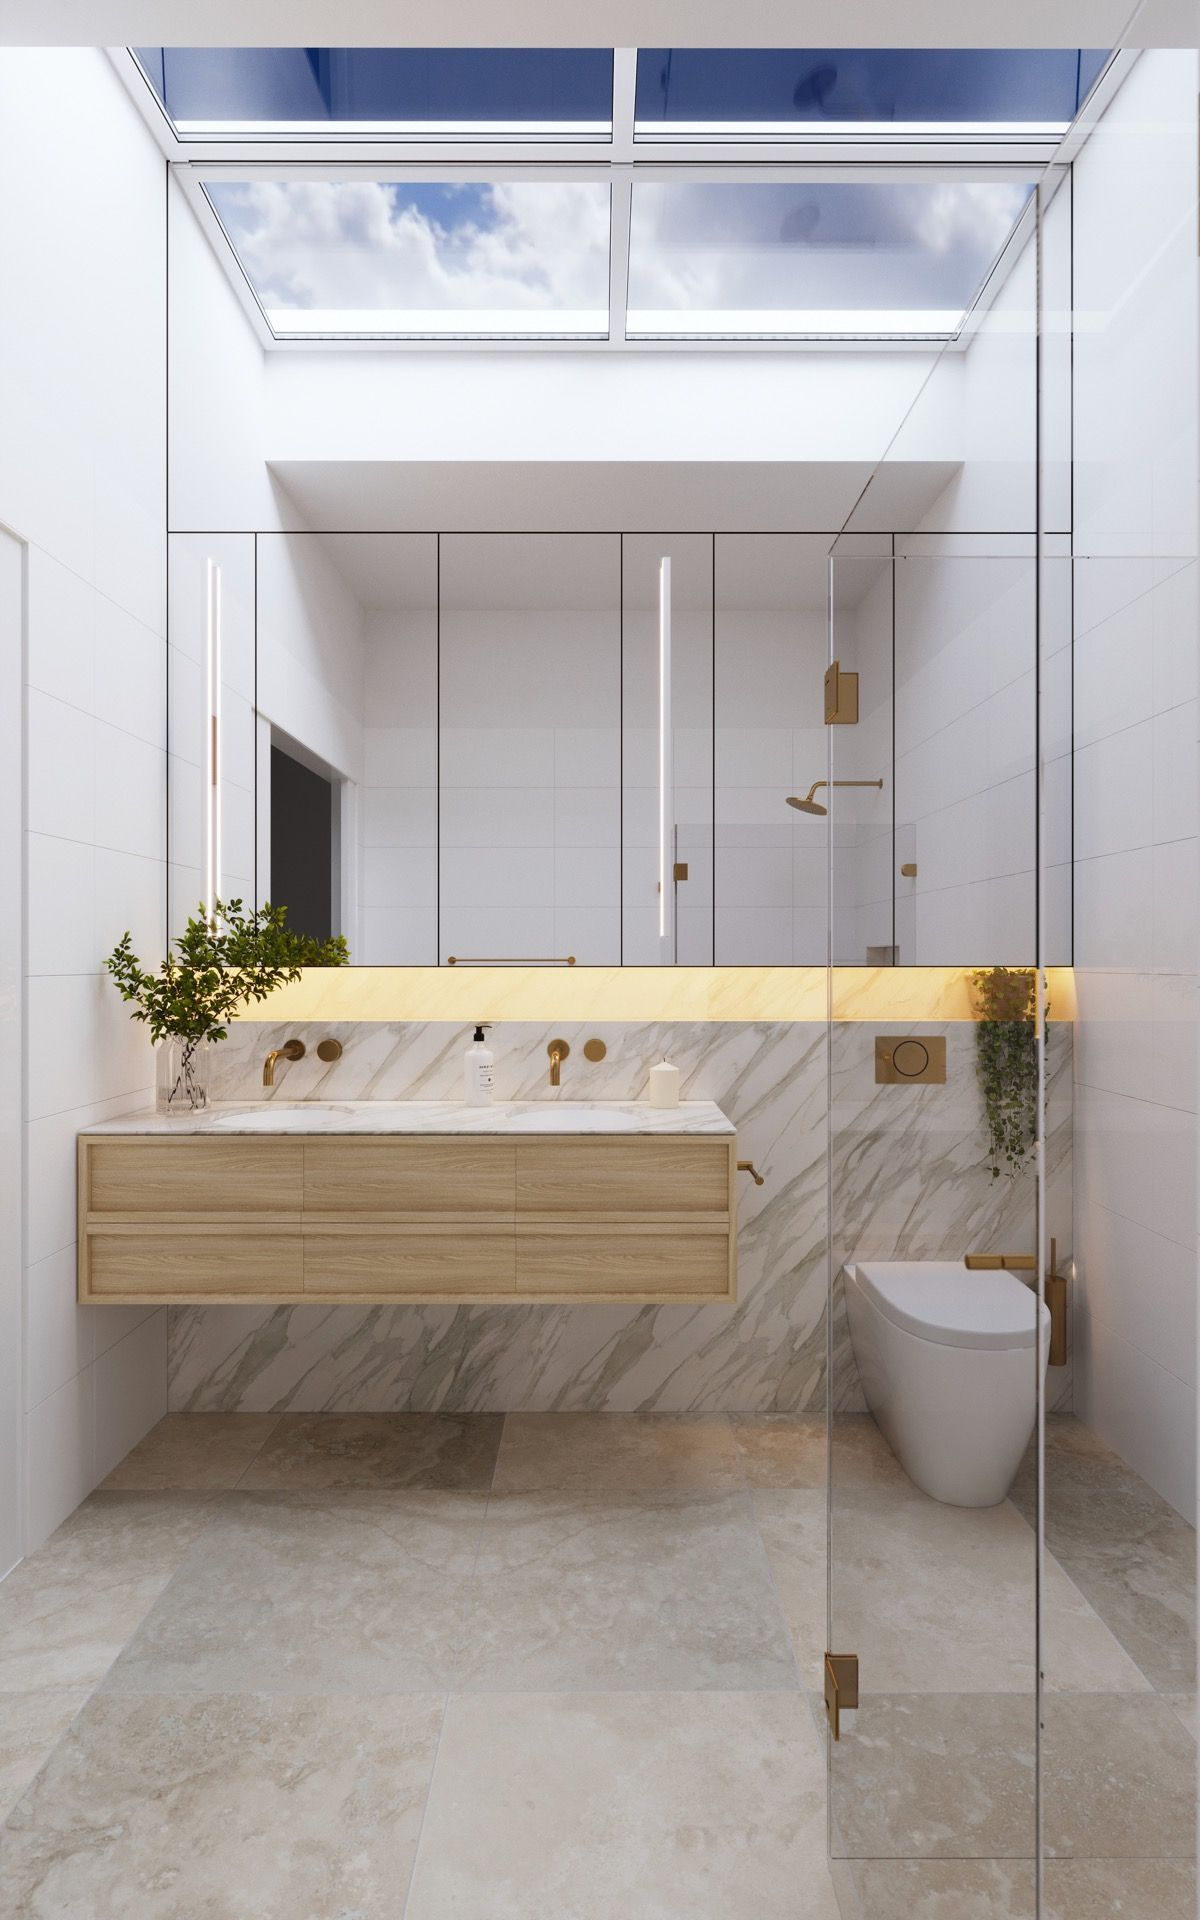 Mesmerizing master bathrooms with skylight skylightideas